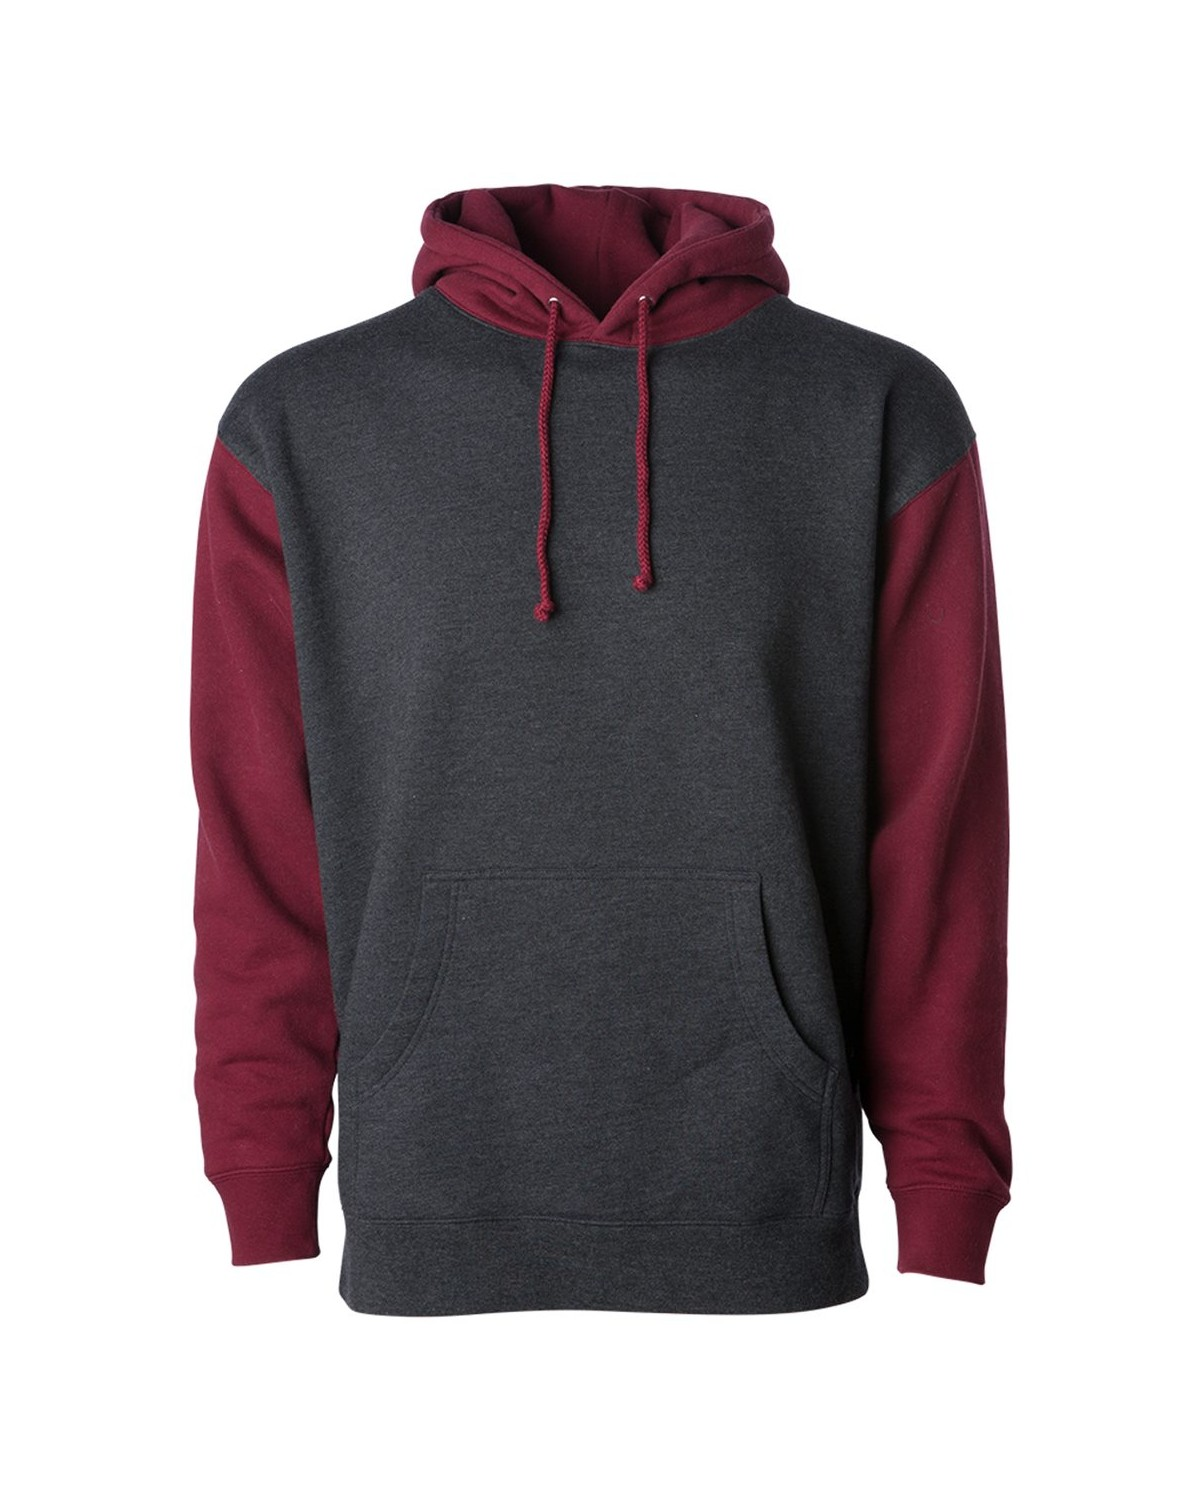 IND4000 Independent Trading Company Charcoal Heather/ Currant